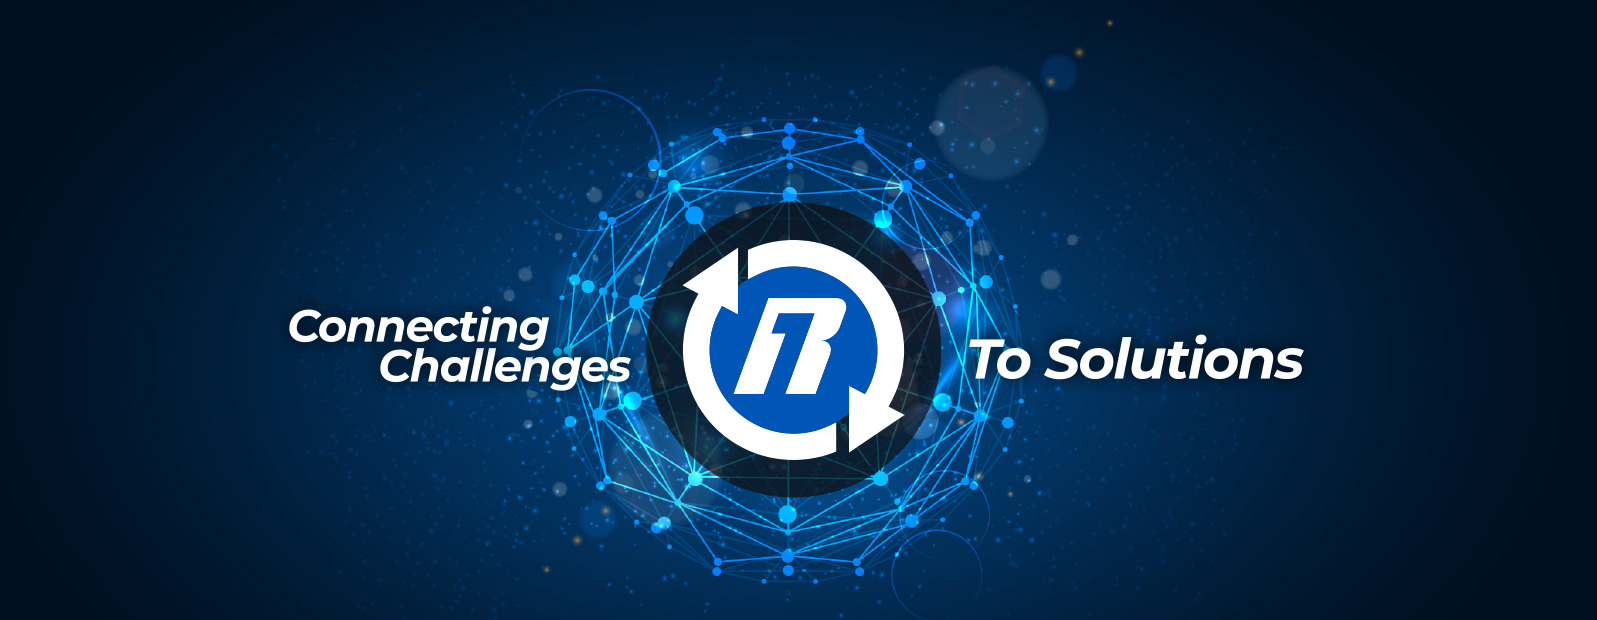 Resolve One Connecting Challenges to Solutions